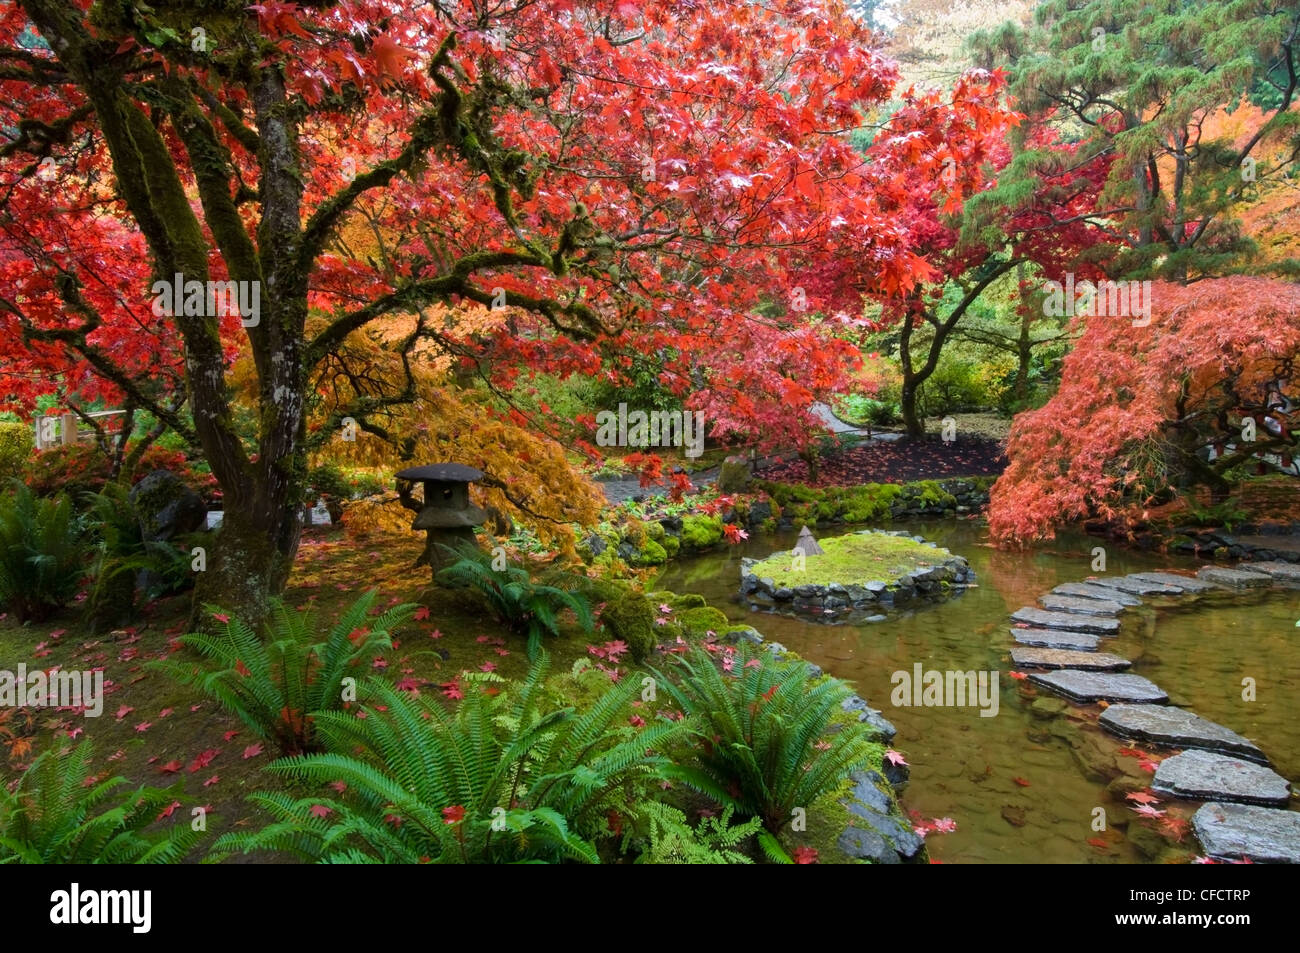 japanischer garten im herbst am butchart gardens victoria vancouver island british columbia. Black Bedroom Furniture Sets. Home Design Ideas